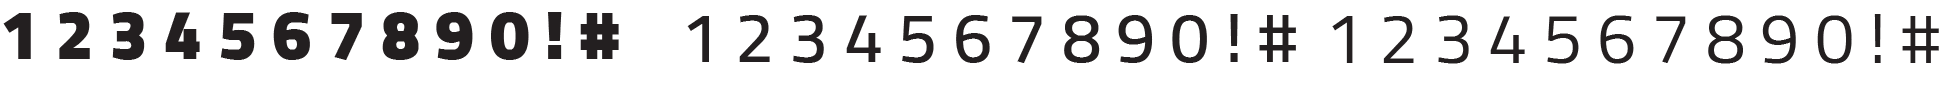 pcoc font numbers